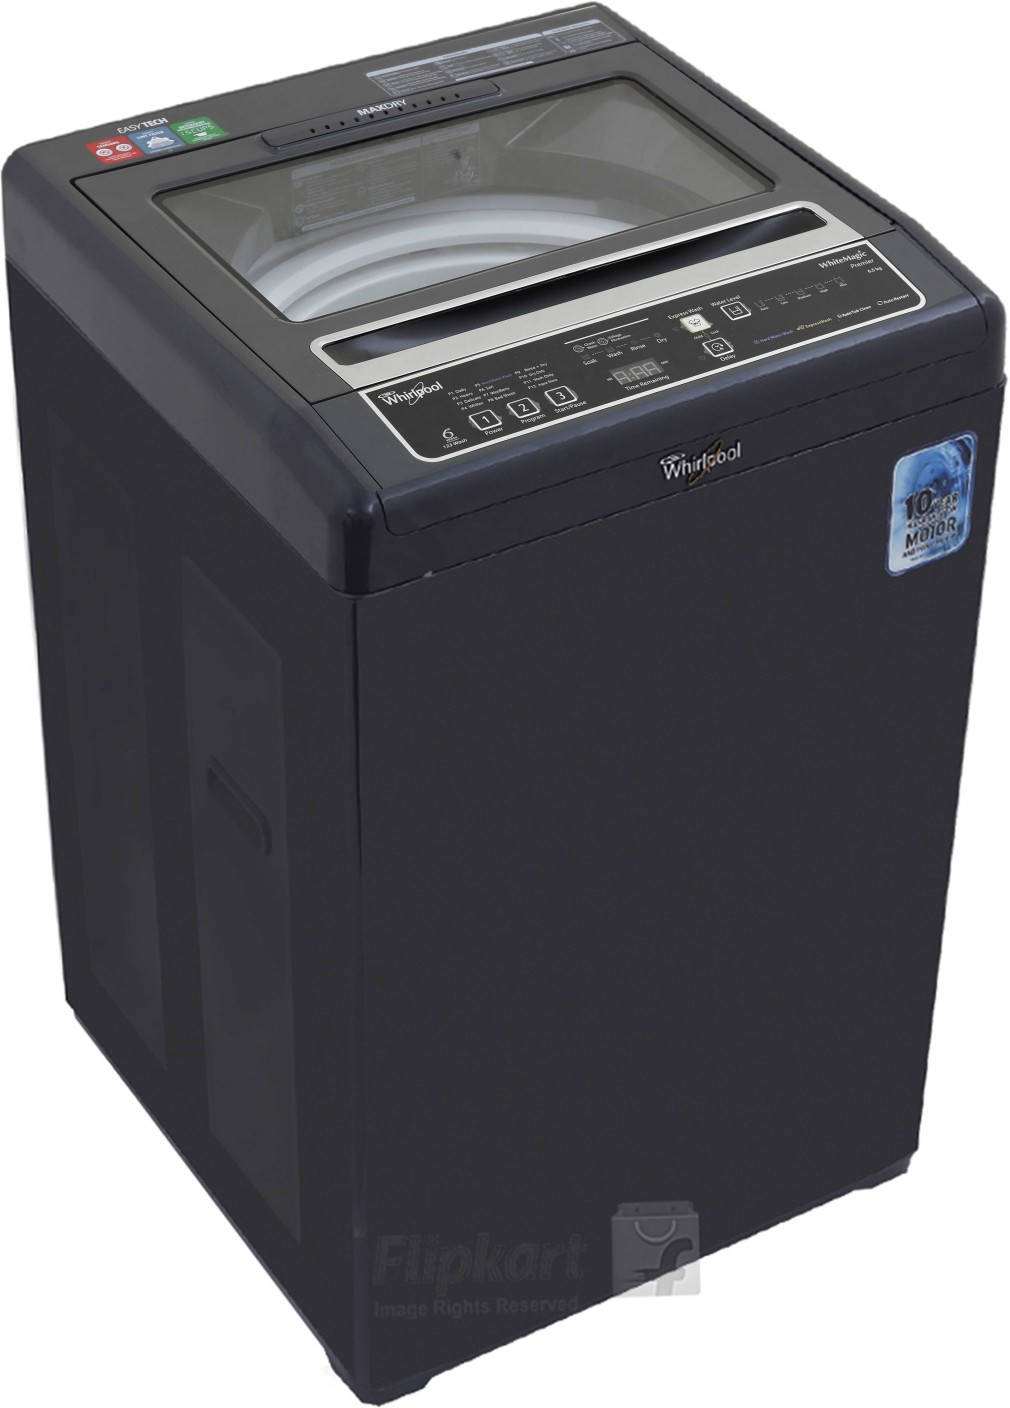 whirlpool 6 5 kg fully automatic top load washing machine. Black Bedroom Furniture Sets. Home Design Ideas